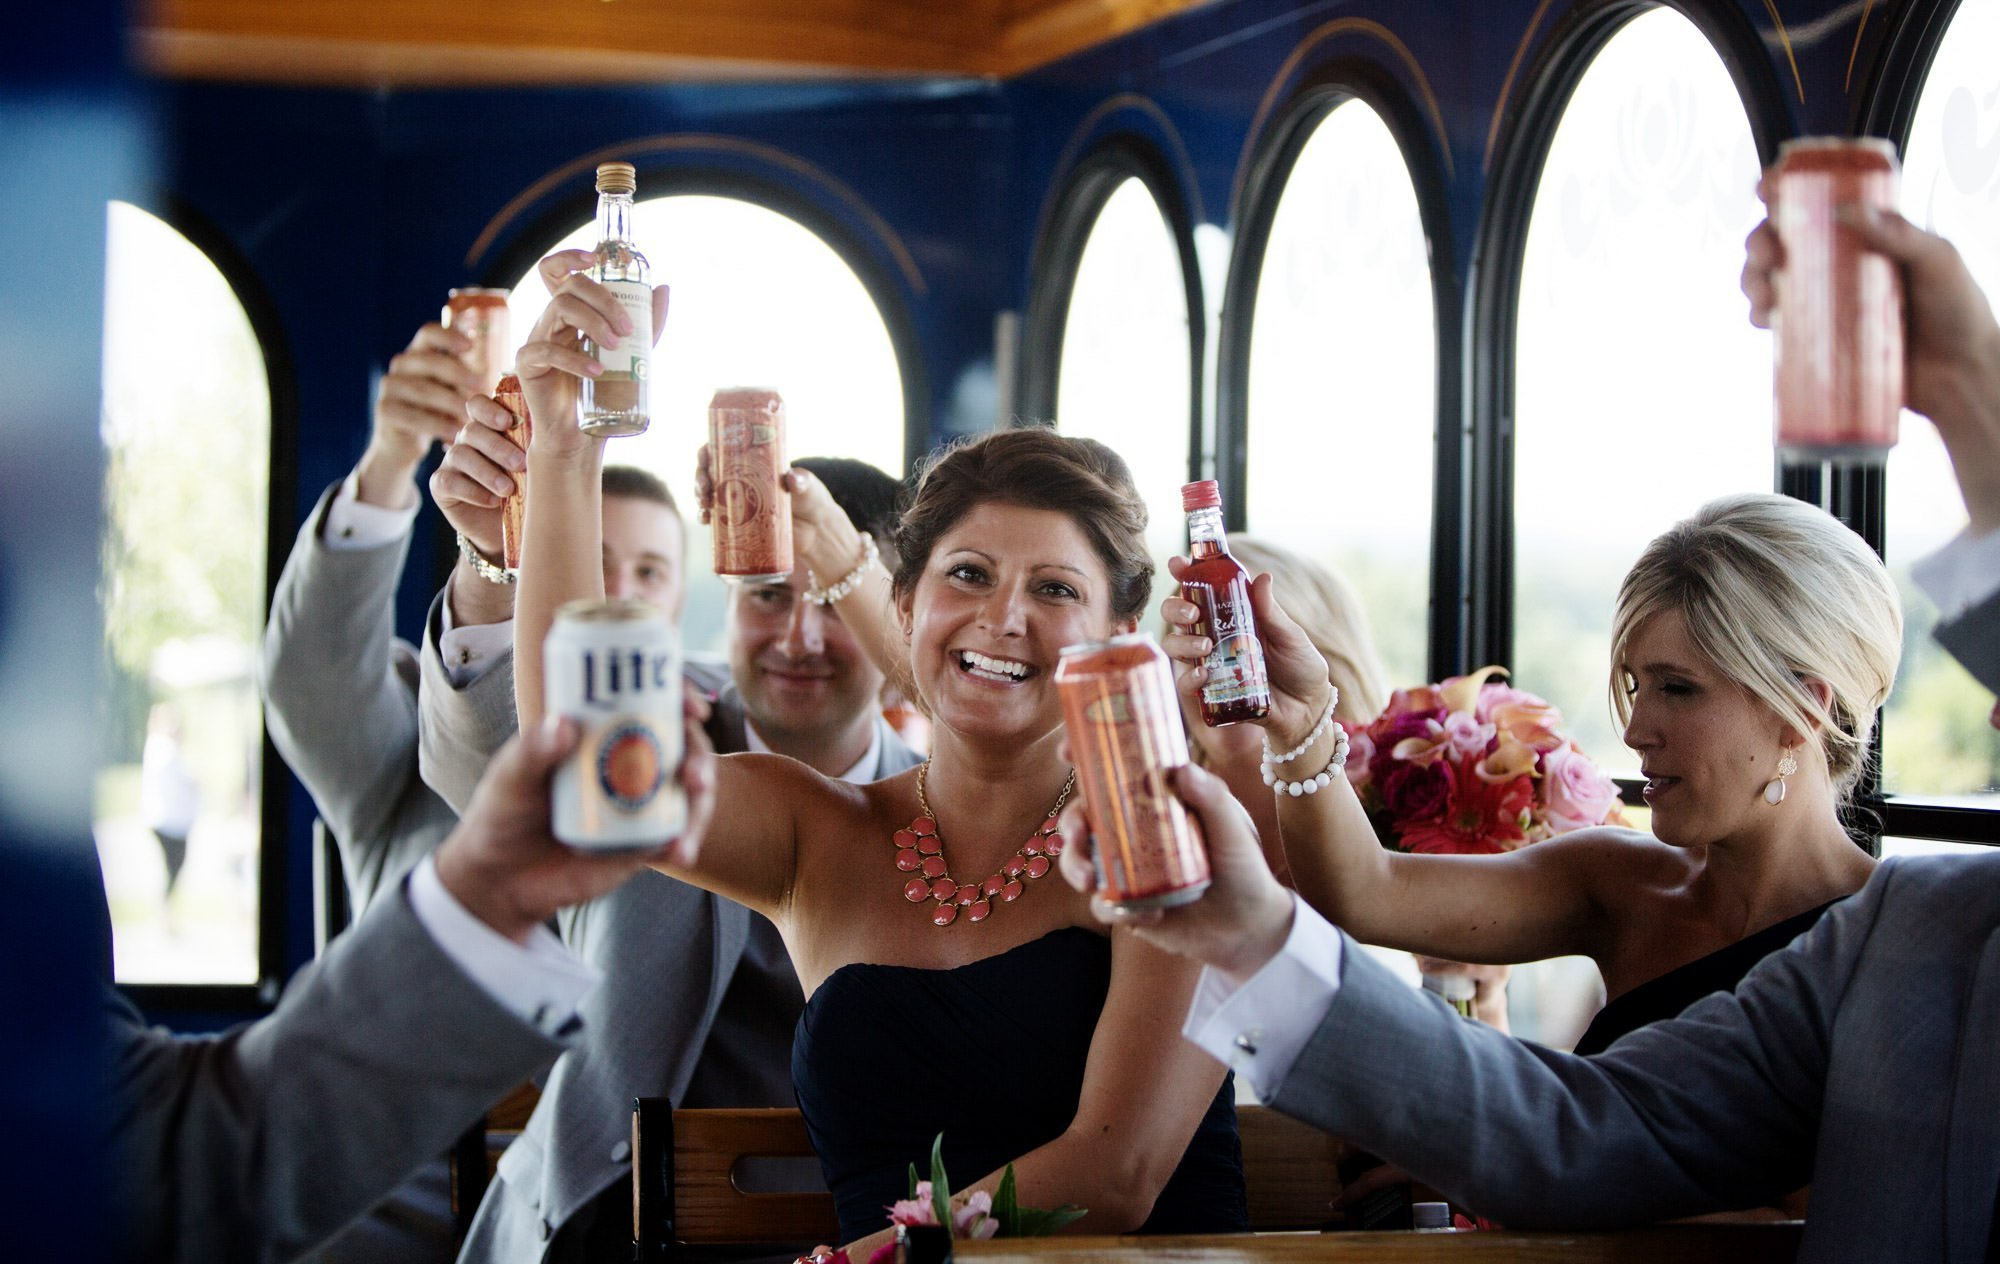 The wedding party cheers on the trolley.